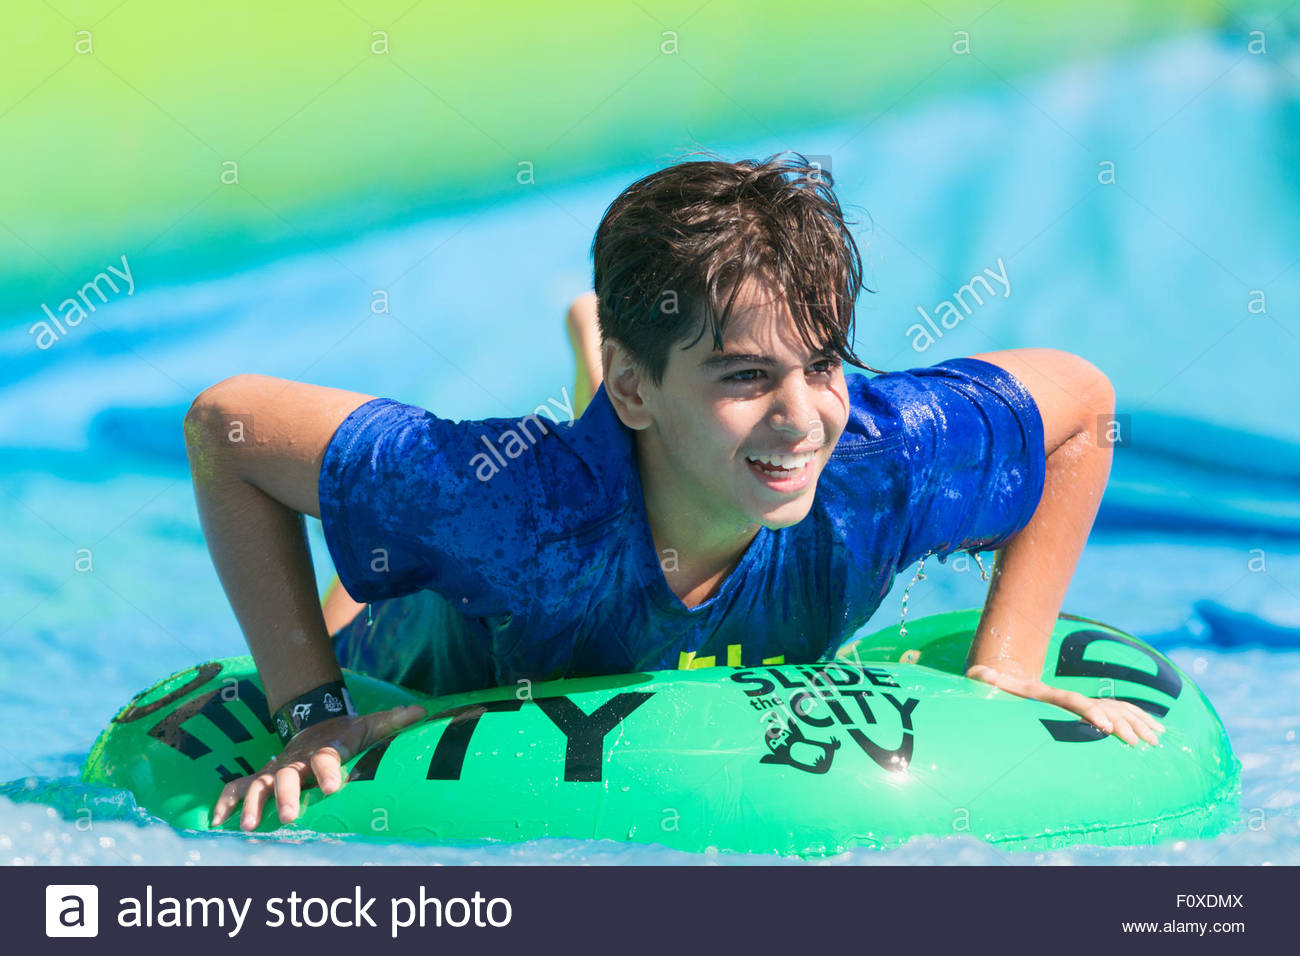 An exuberant young boy smiling as he enjoys a ride on a giant water slide during a Slide the City event in North Stock Photo